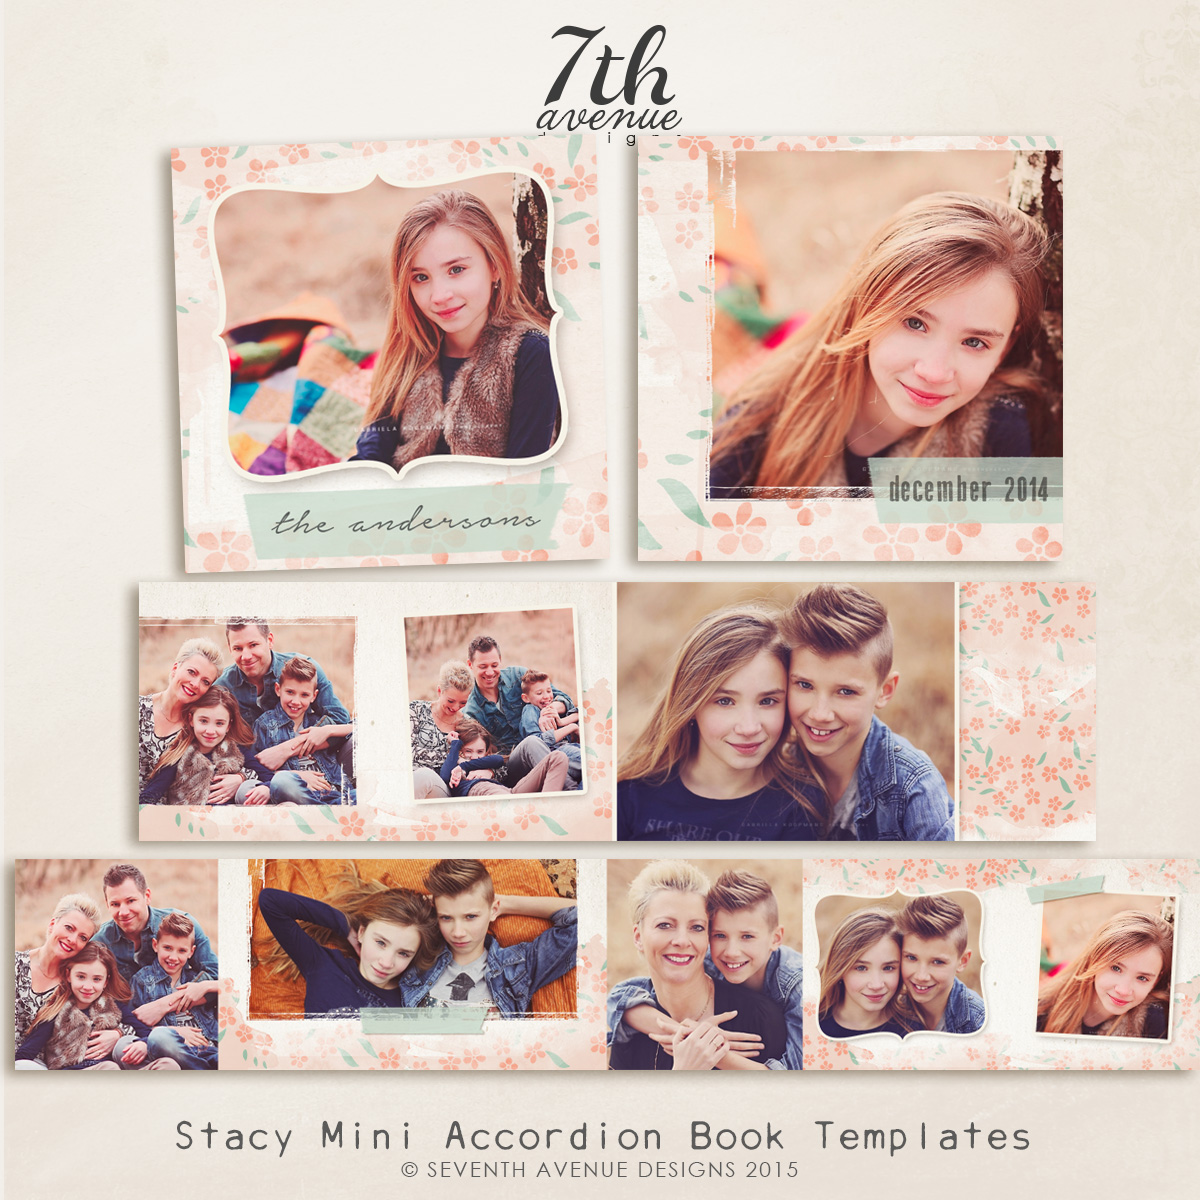 Stacy 3x3 Accordion book templates